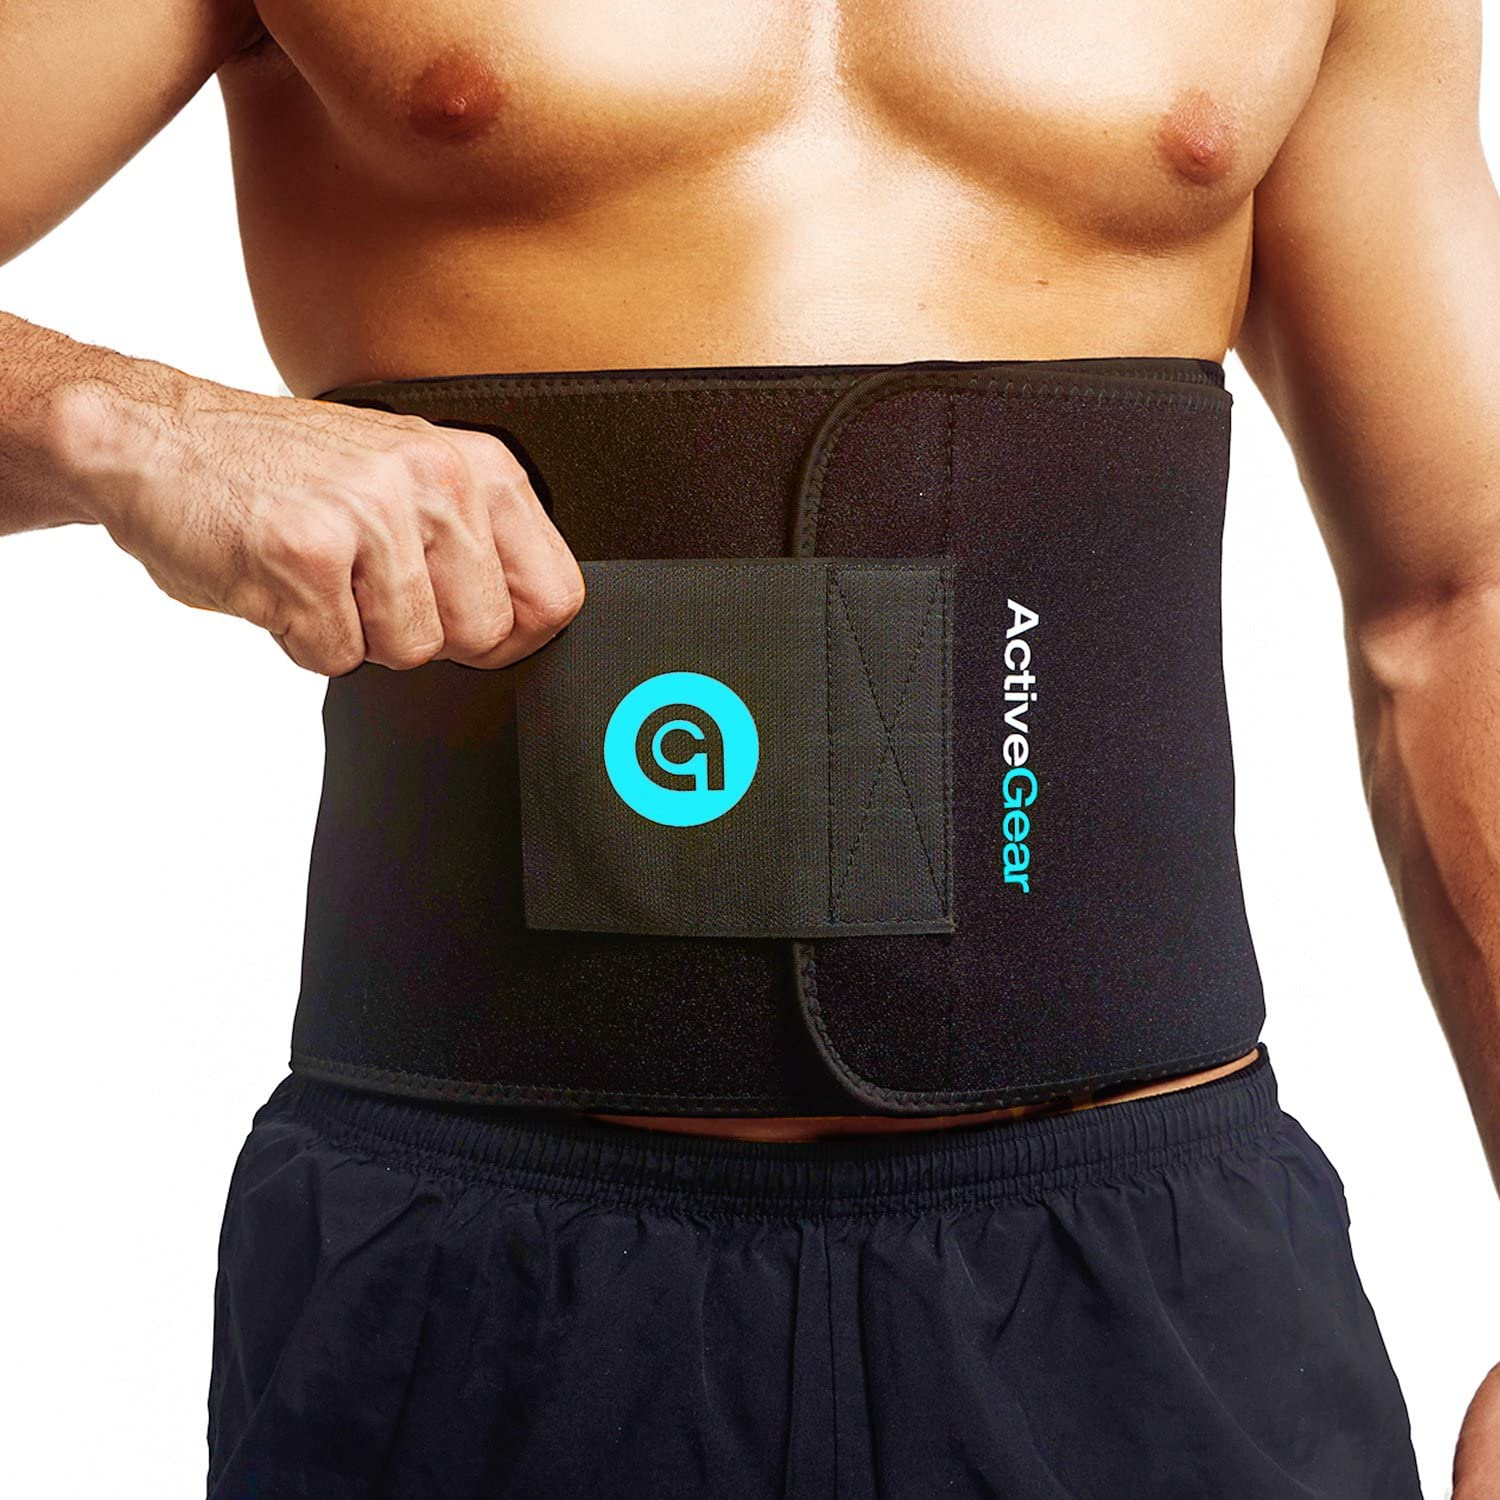 ActiveGear Waist Trimmer Belt Slim Body Sweat Wrap for Stomach and Back Lumbar Support: Sports & Outdoors